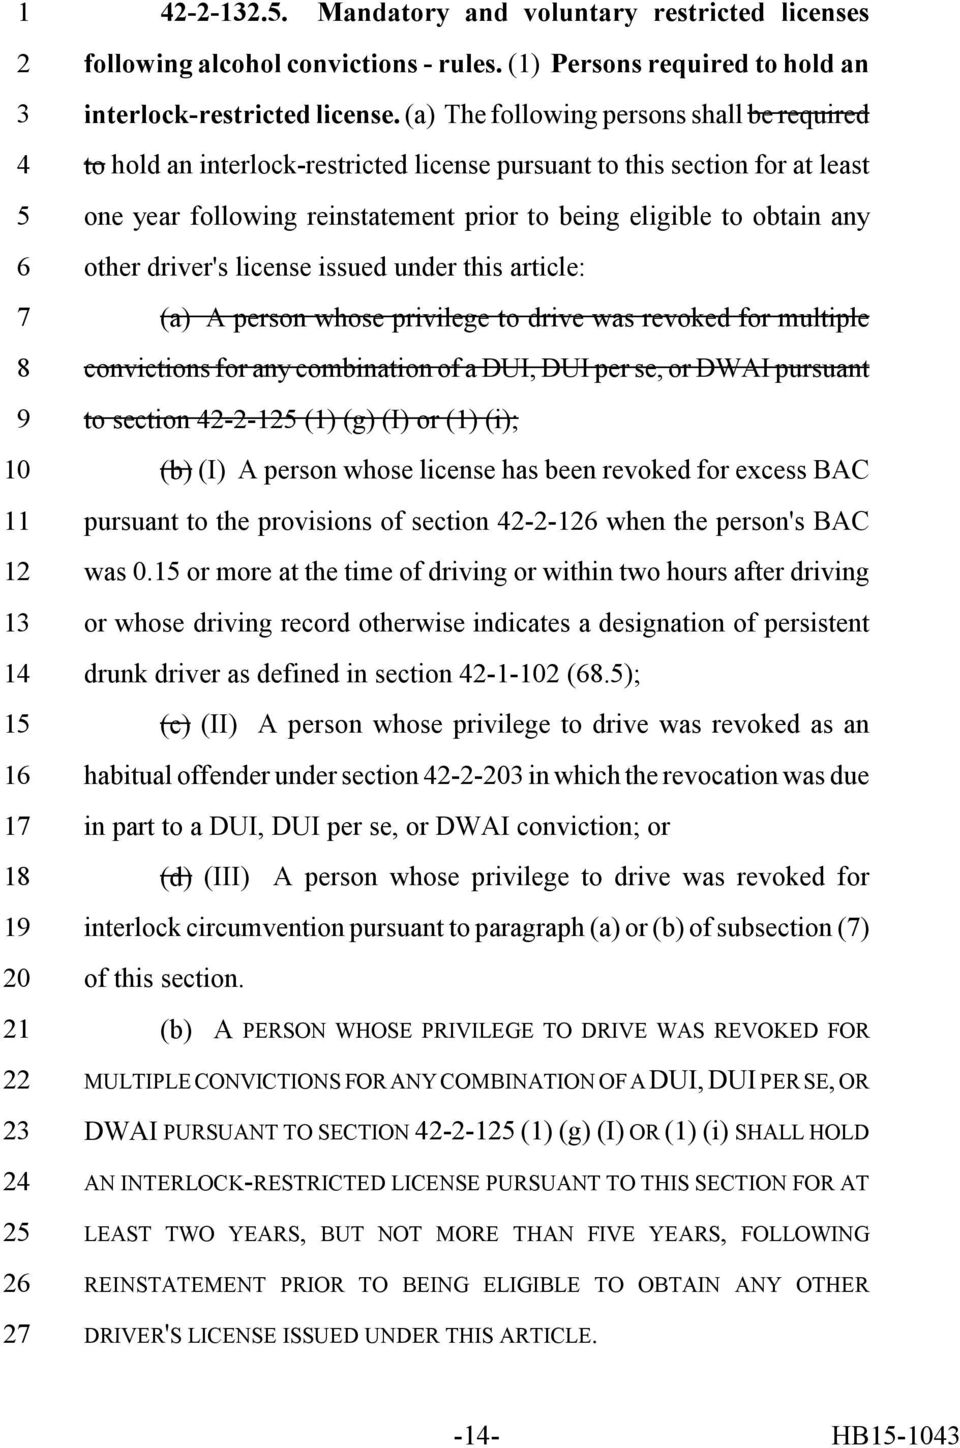 driver's license issued under this article: (a) A person whose privilege to drive was revoked for multiple convictions for any combination of a DUI, DUI per se, or DWAI pursuant to section -- (1) (g)